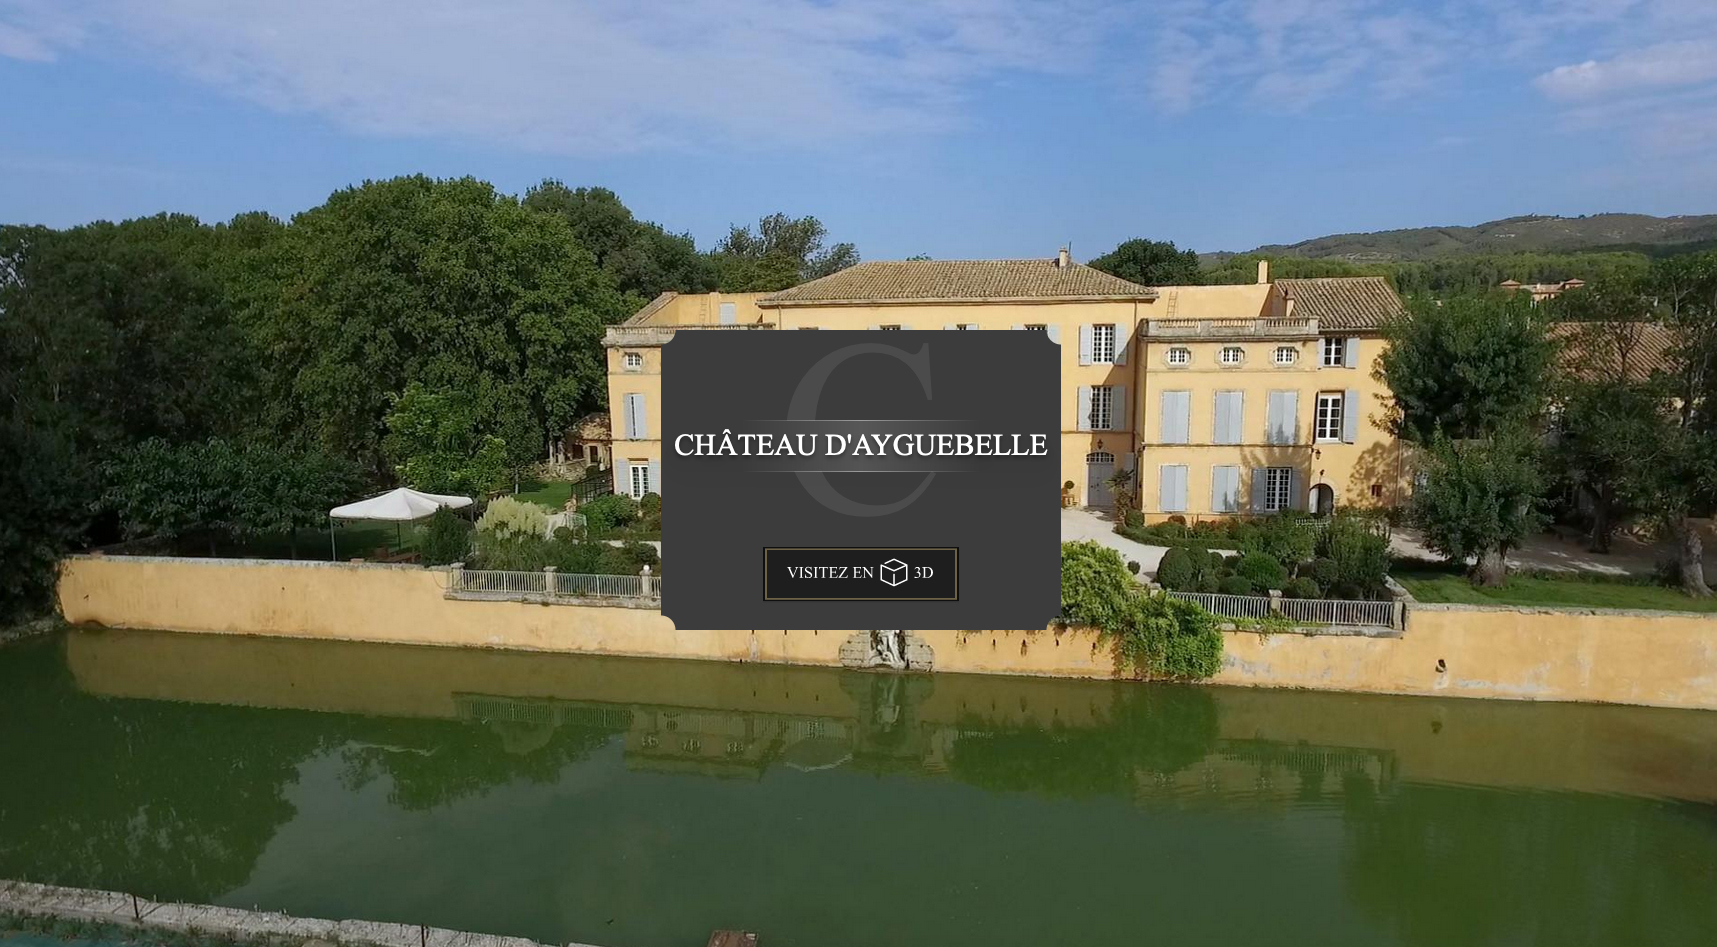 visite immersive 3D chateau ayguebelle